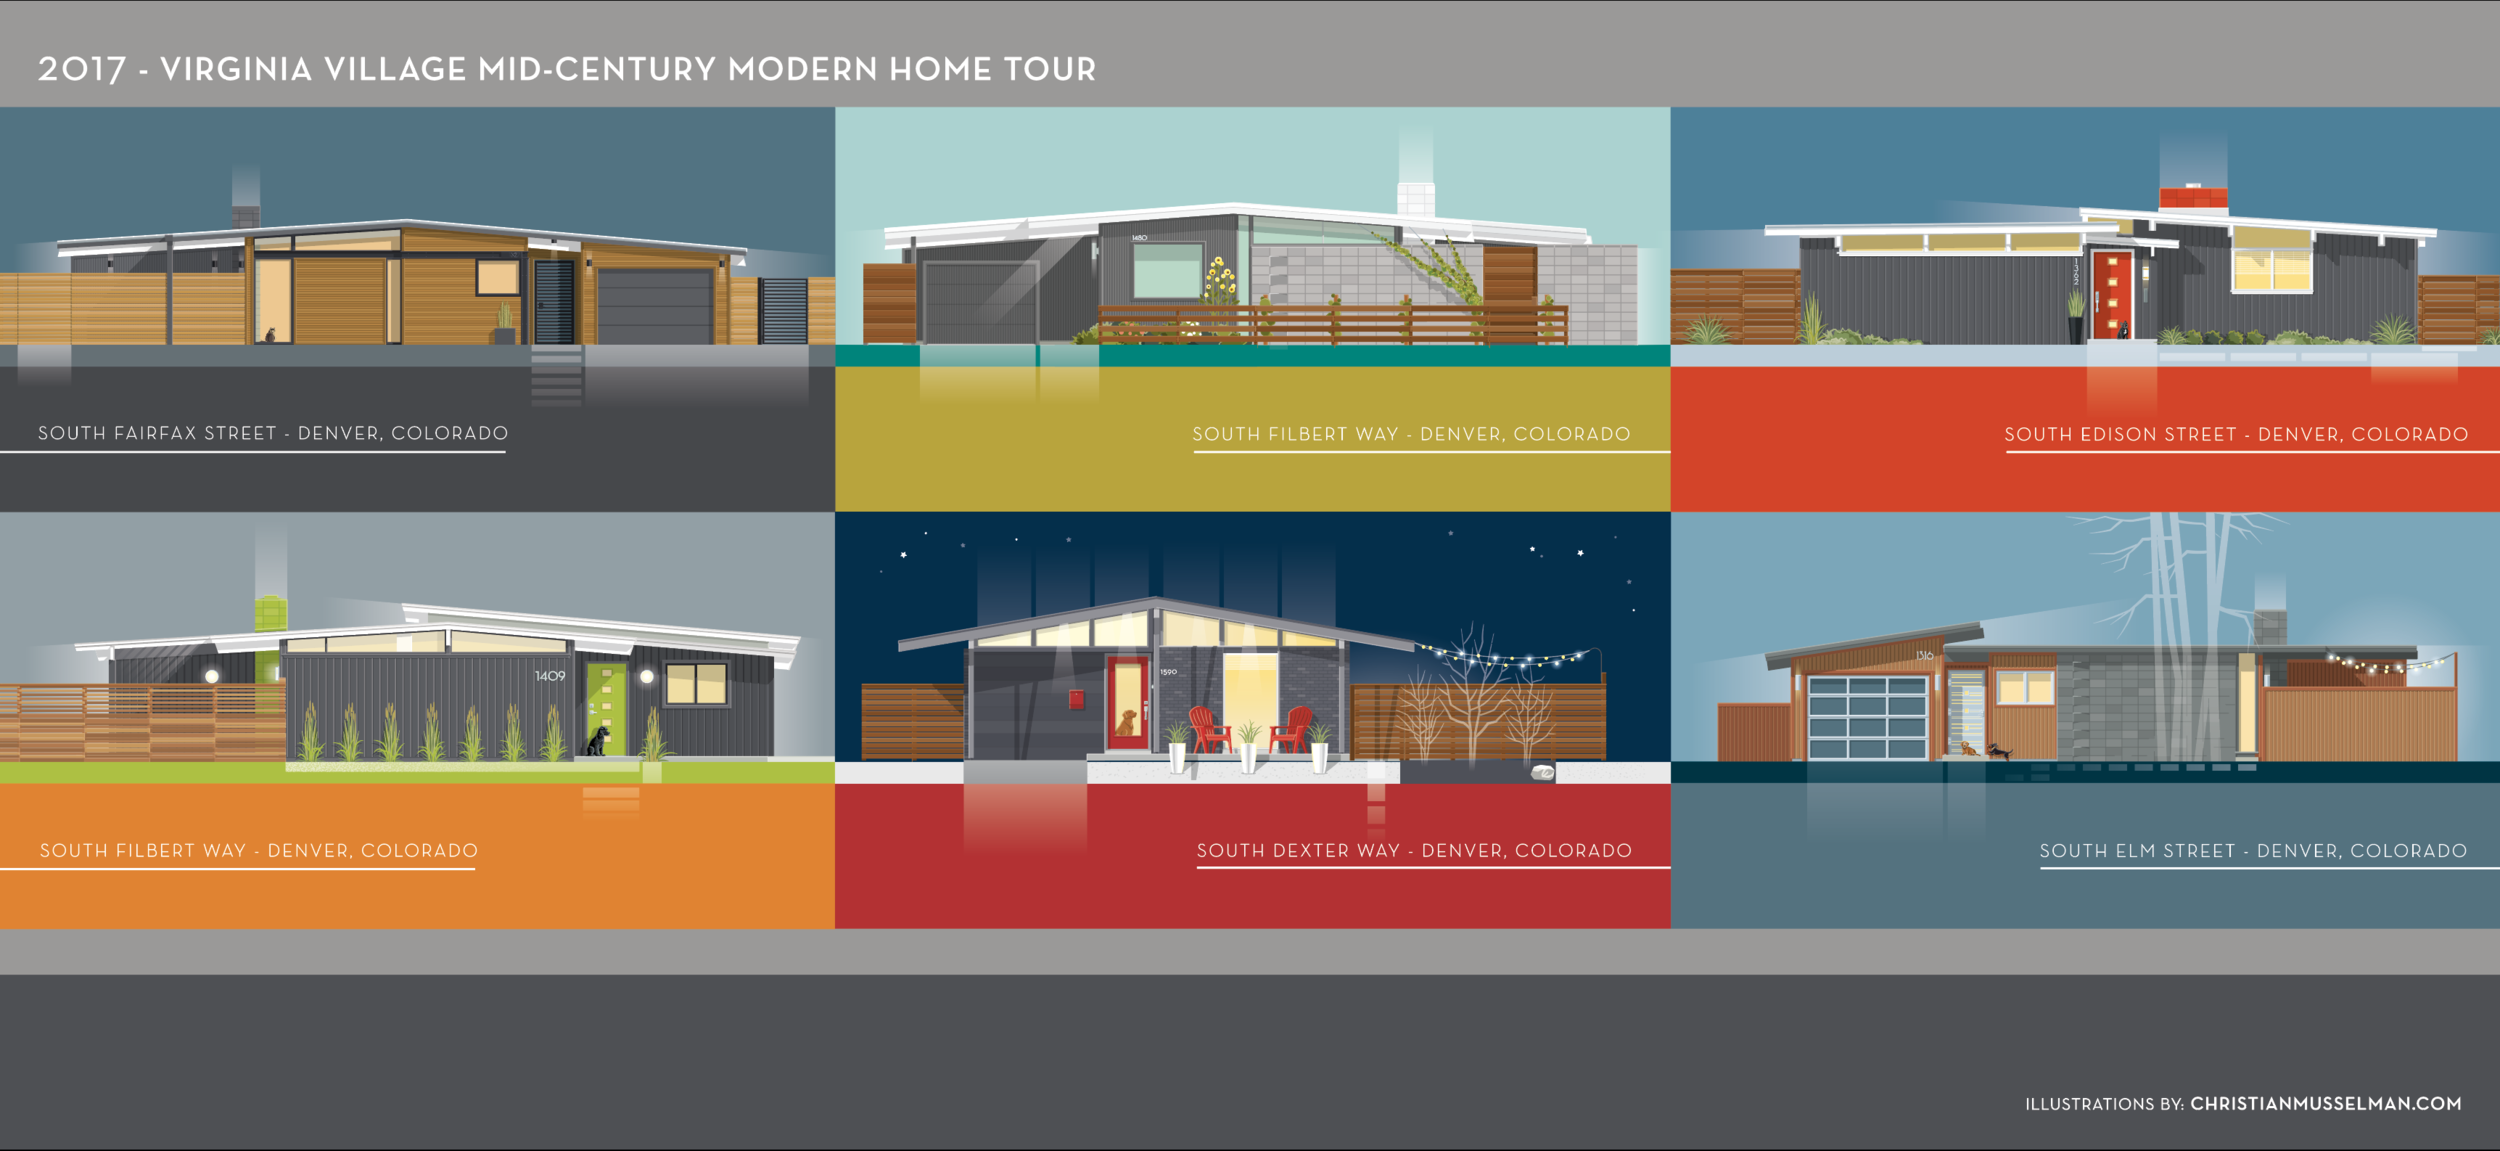 Poster images for the home tour by Christian Musselman